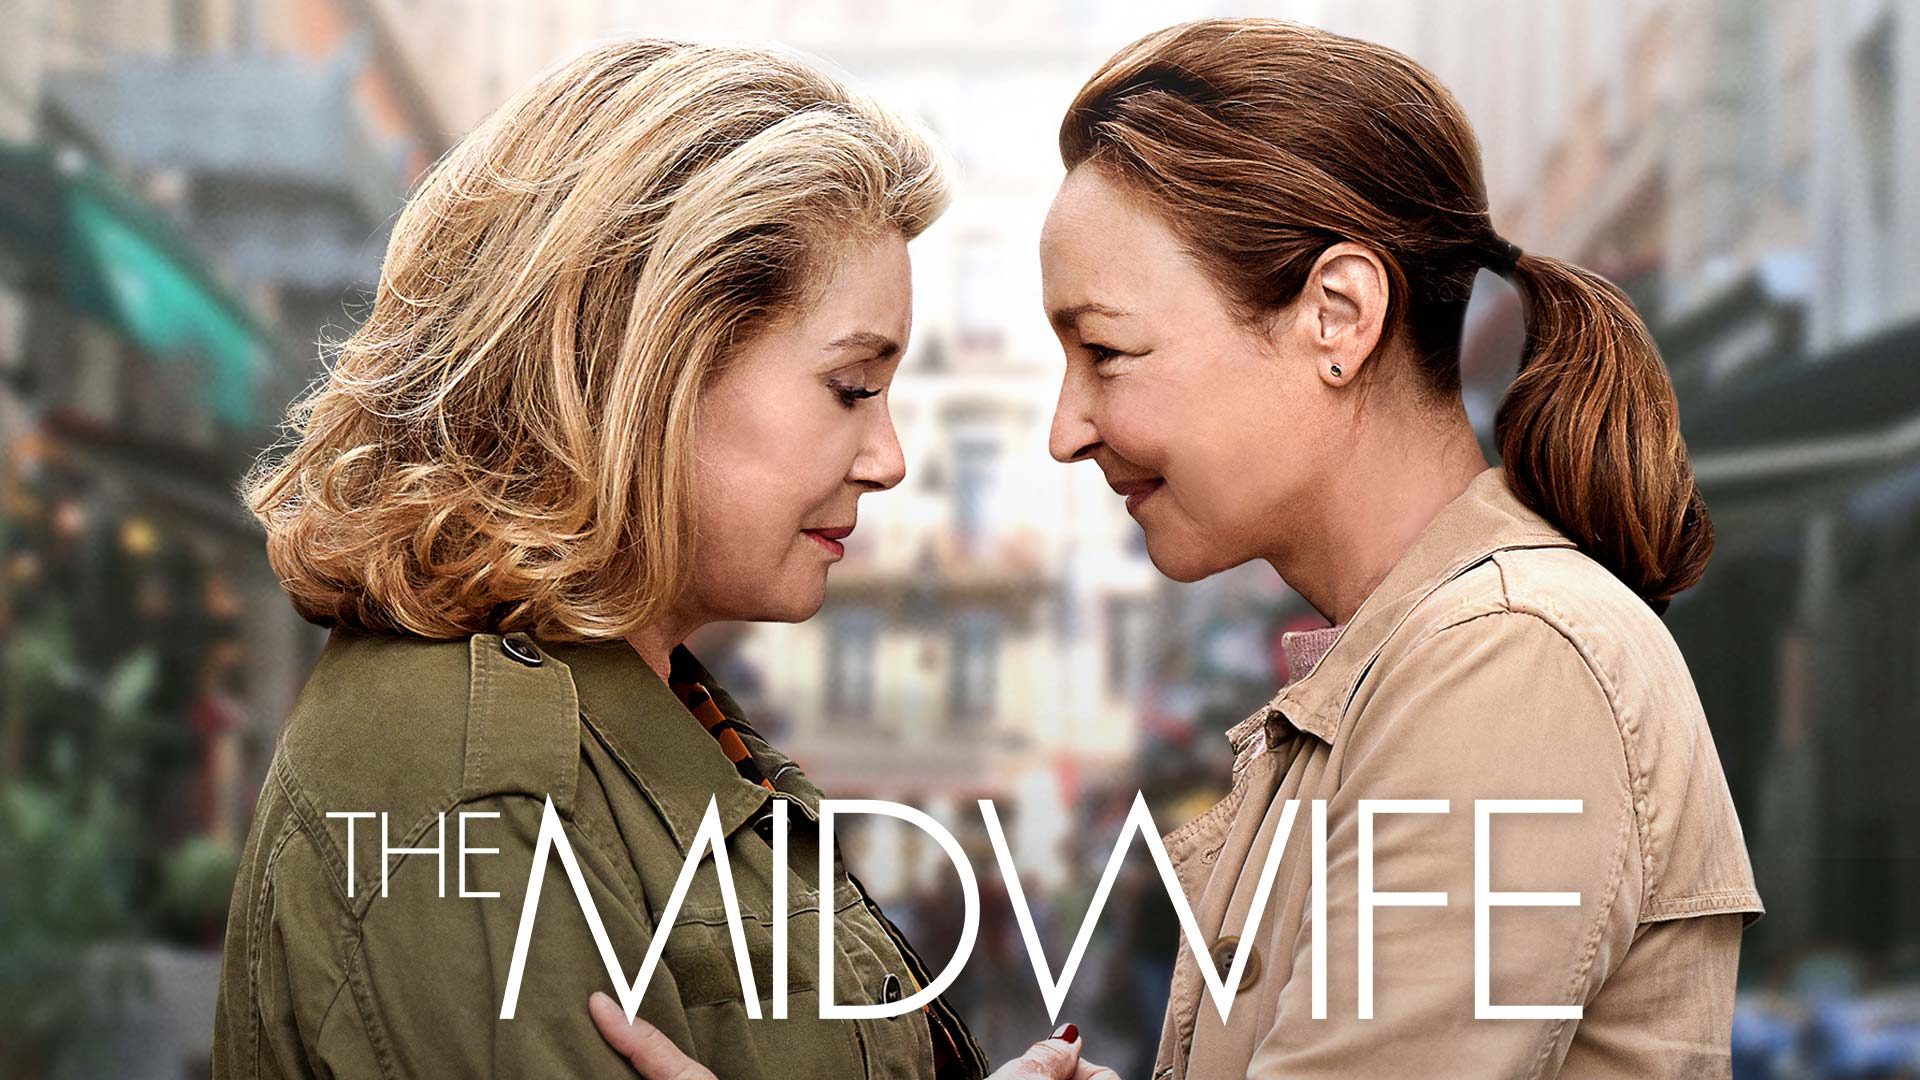 The Midwife - image